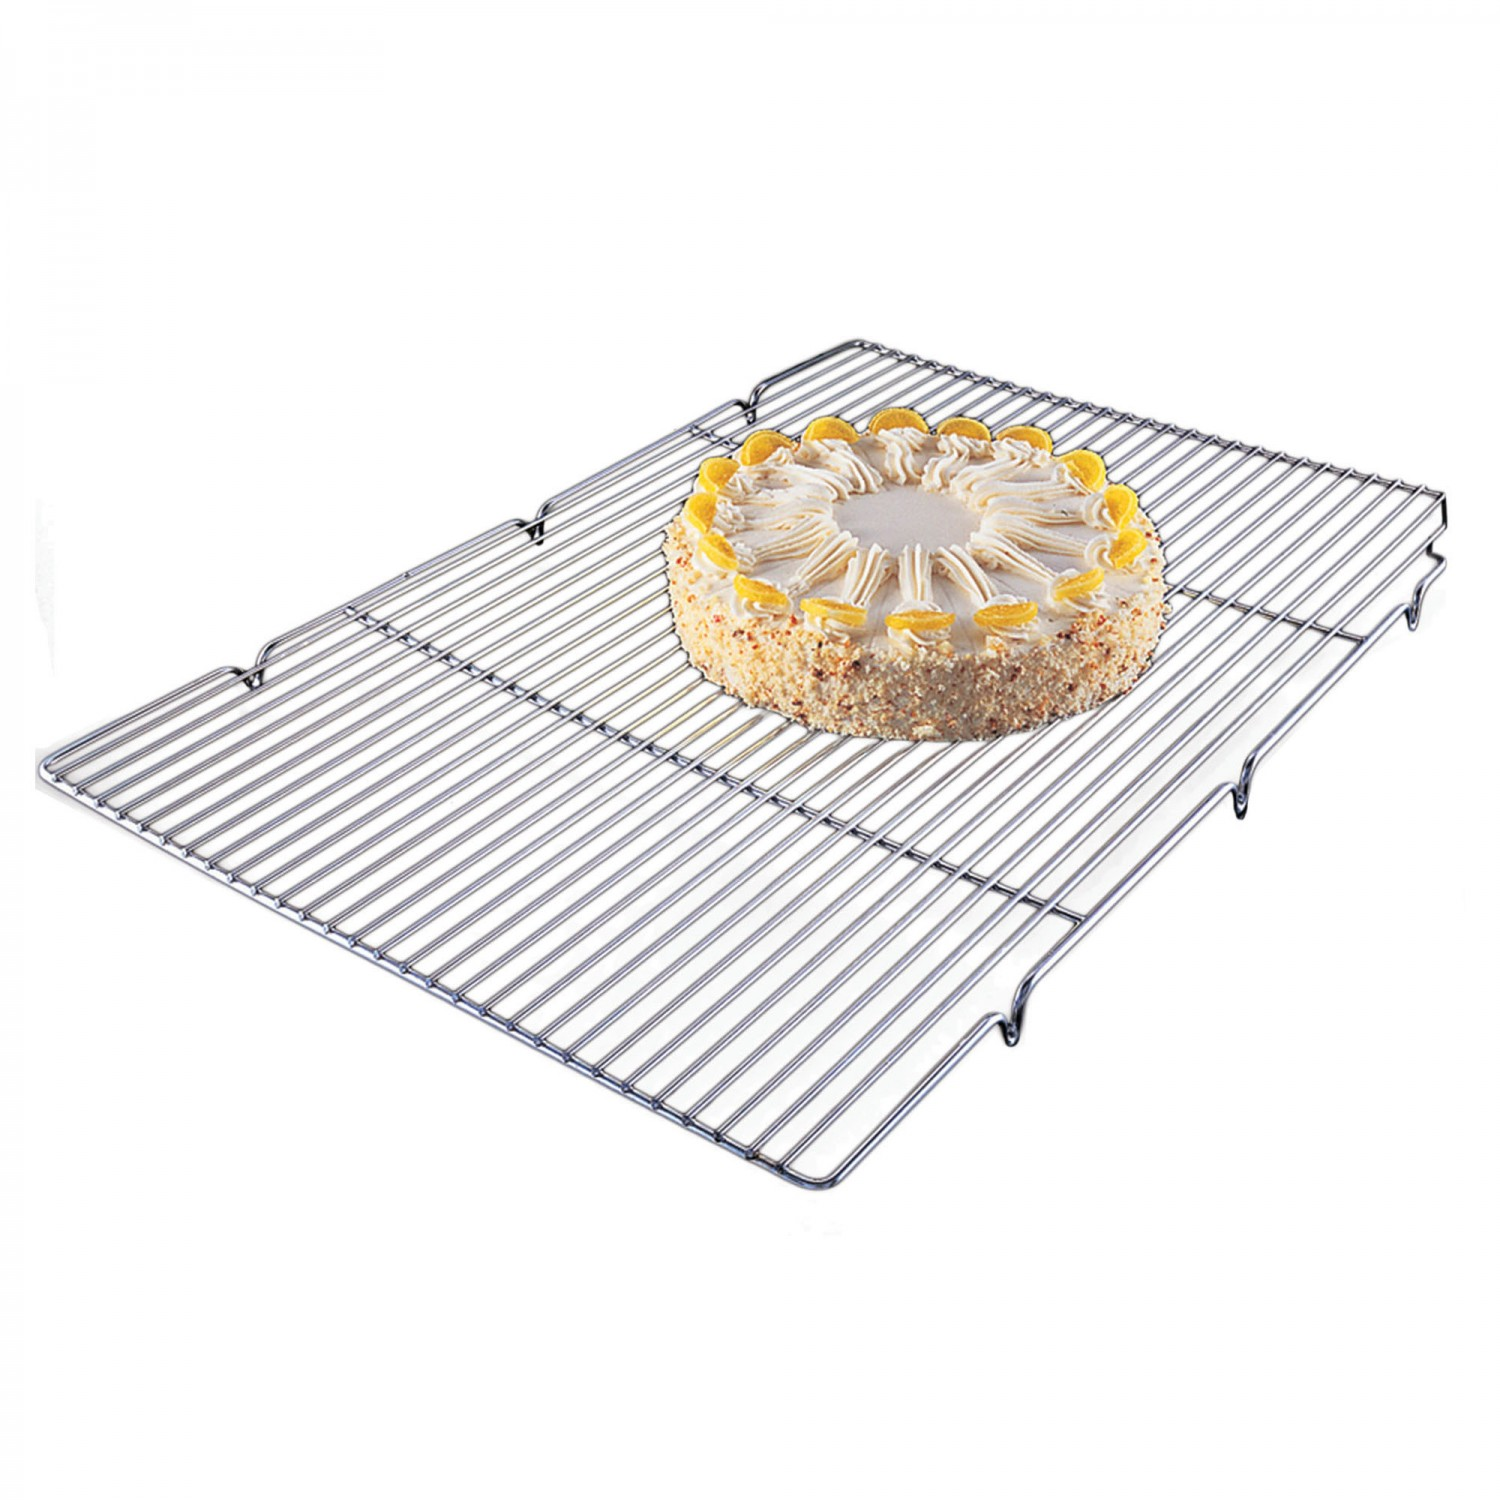 "Focus Foodservice 301WS Chrome Plated Steel Wire Cooling Rack 24-1/2"" x 16-1/2"""